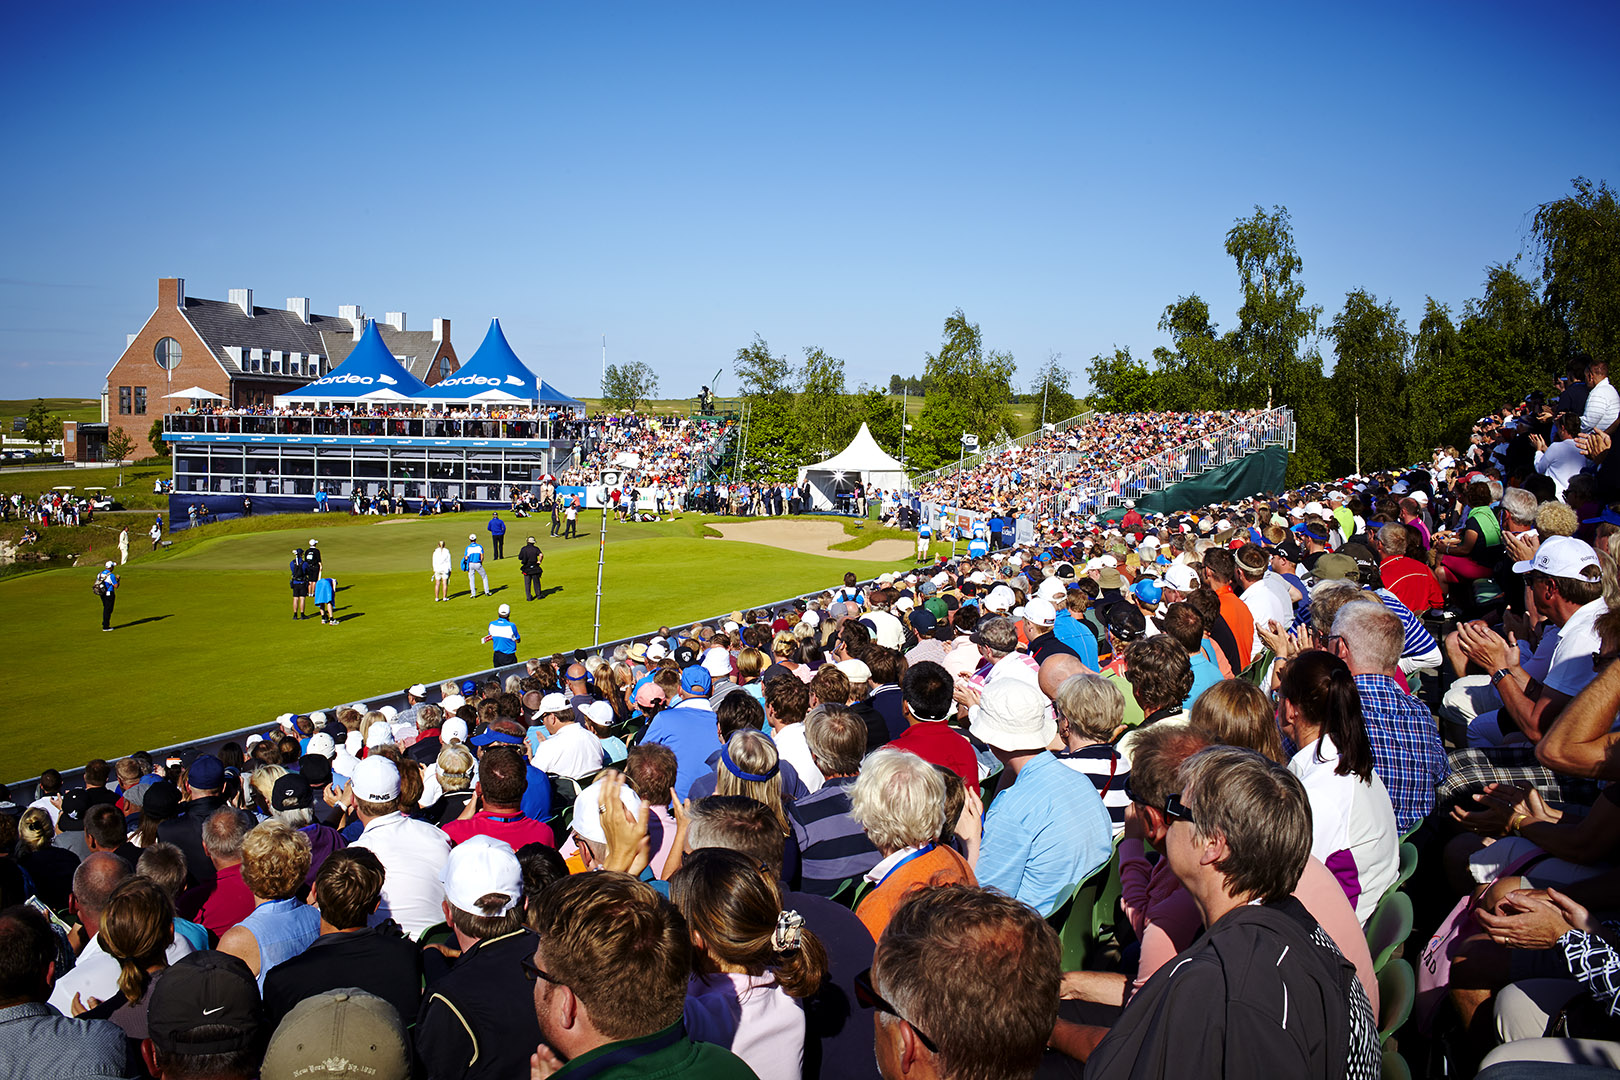 3_PGA Sweden National_16_crowd_Staffan Andersson